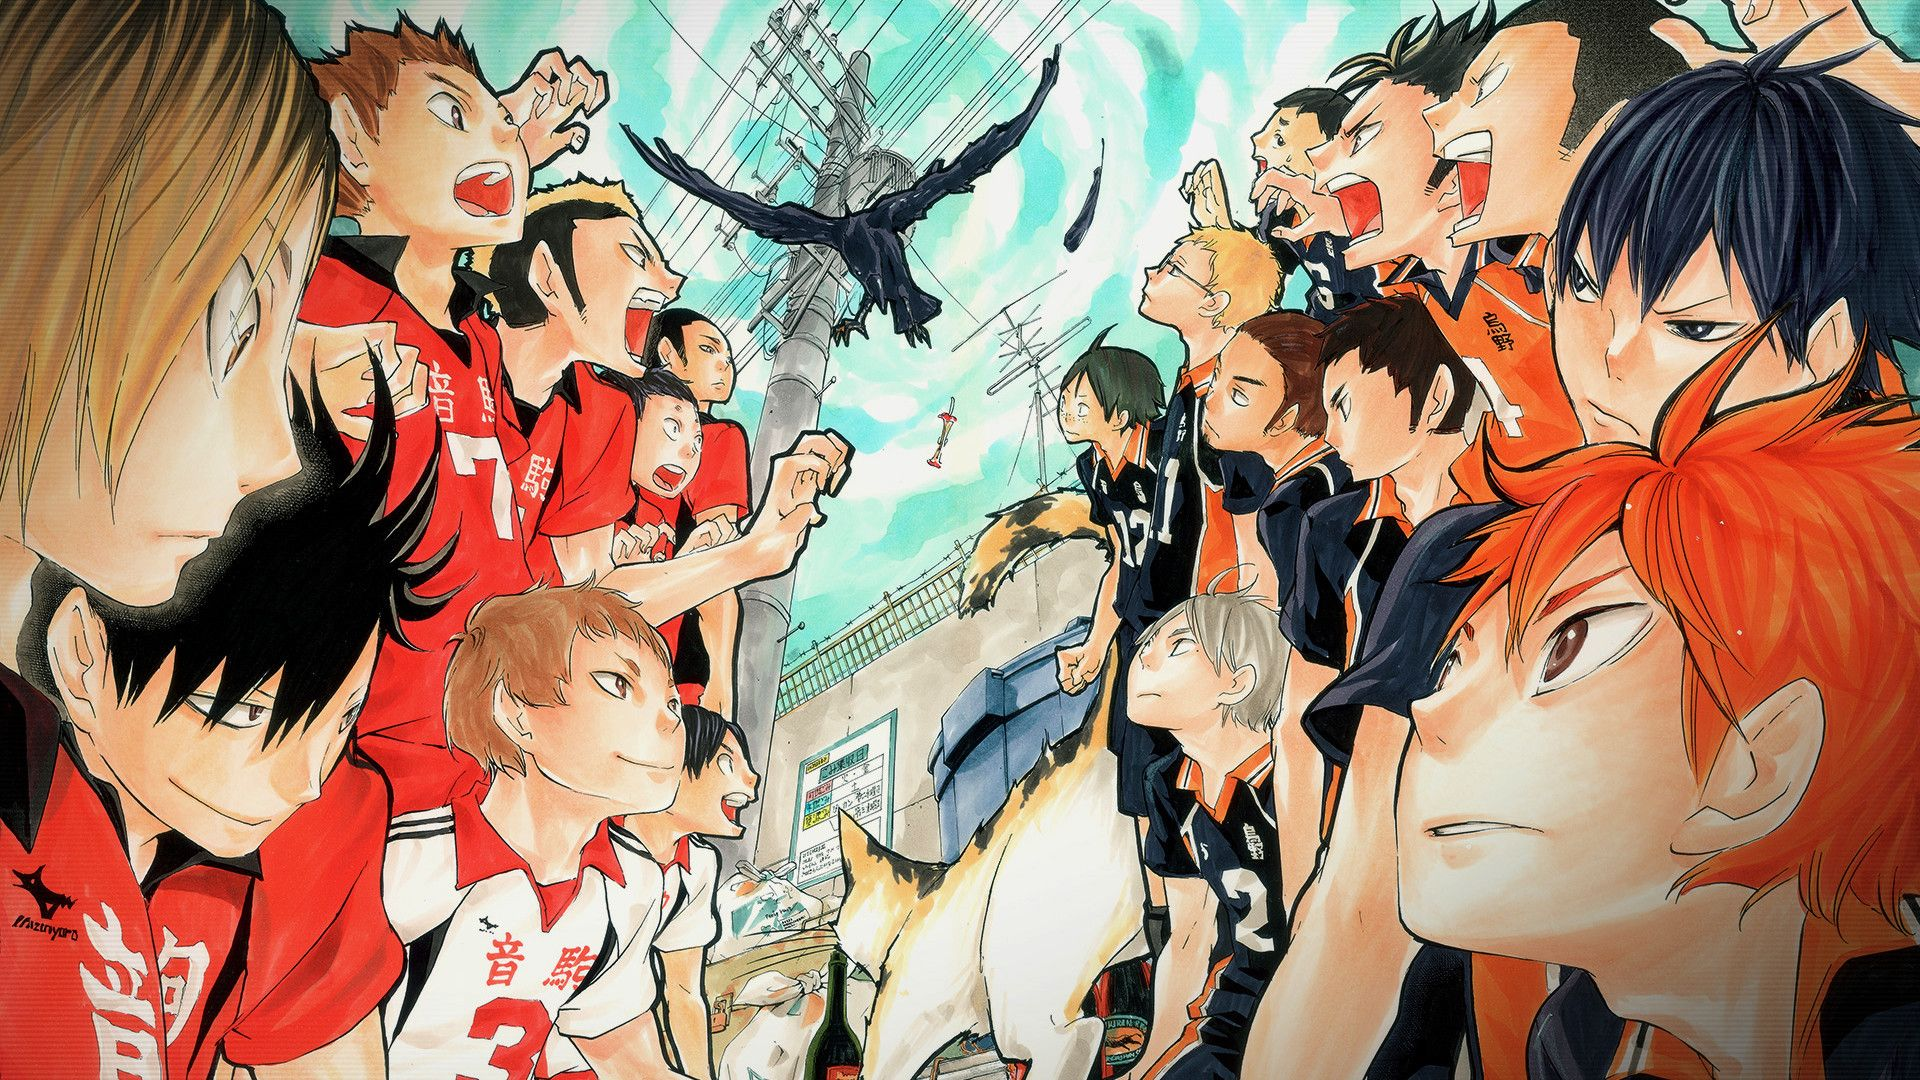 1920x1080 1920x1080 Nekoma Wallpaper Google Search Haikyuu Haikyuu Wallpaper Haikyuu Anime Anime Wallpaper